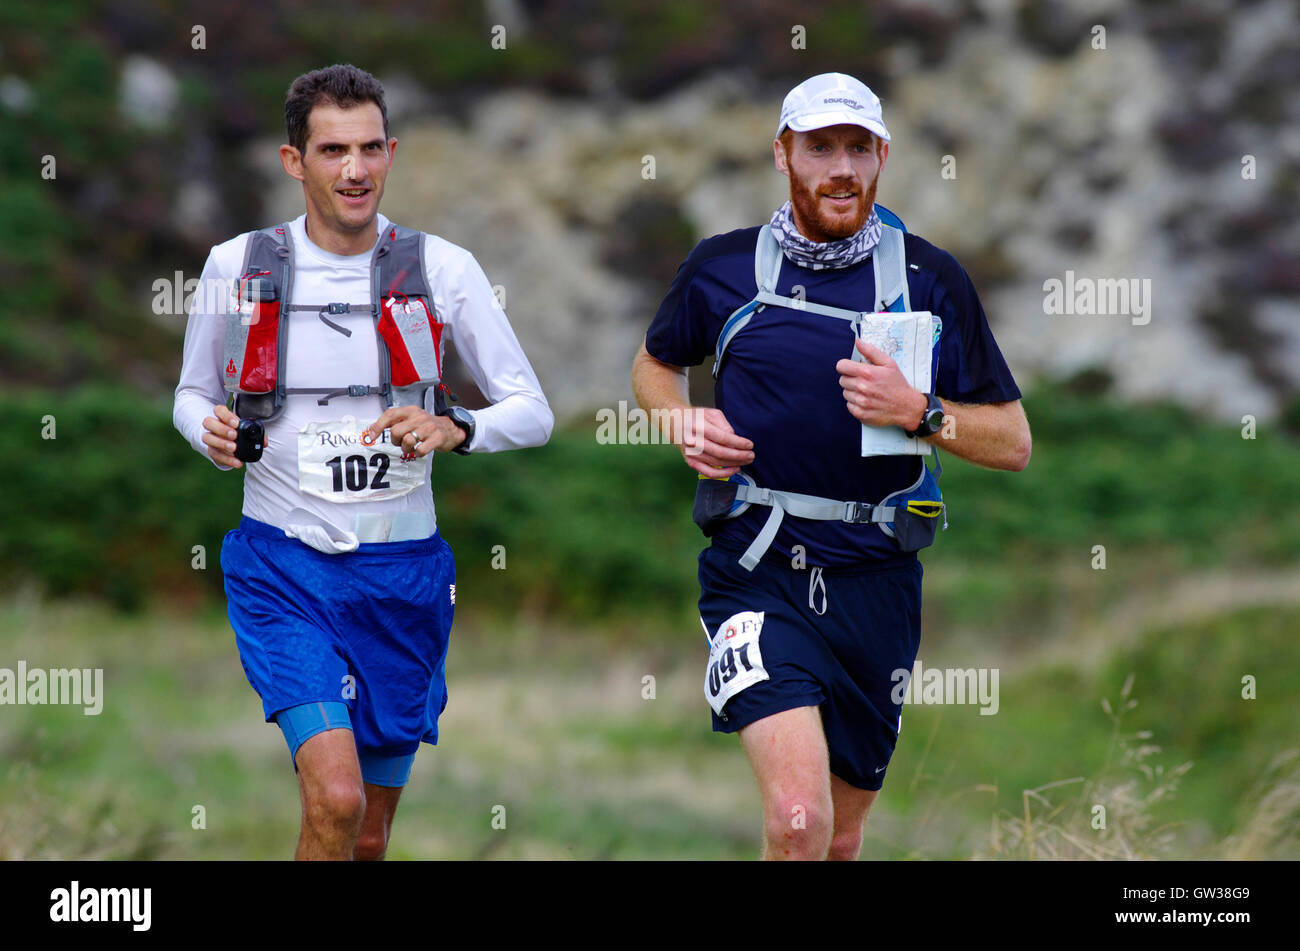 Runners finishing Anglesey Ultra Marathon, Ring o Fire - Stock Image